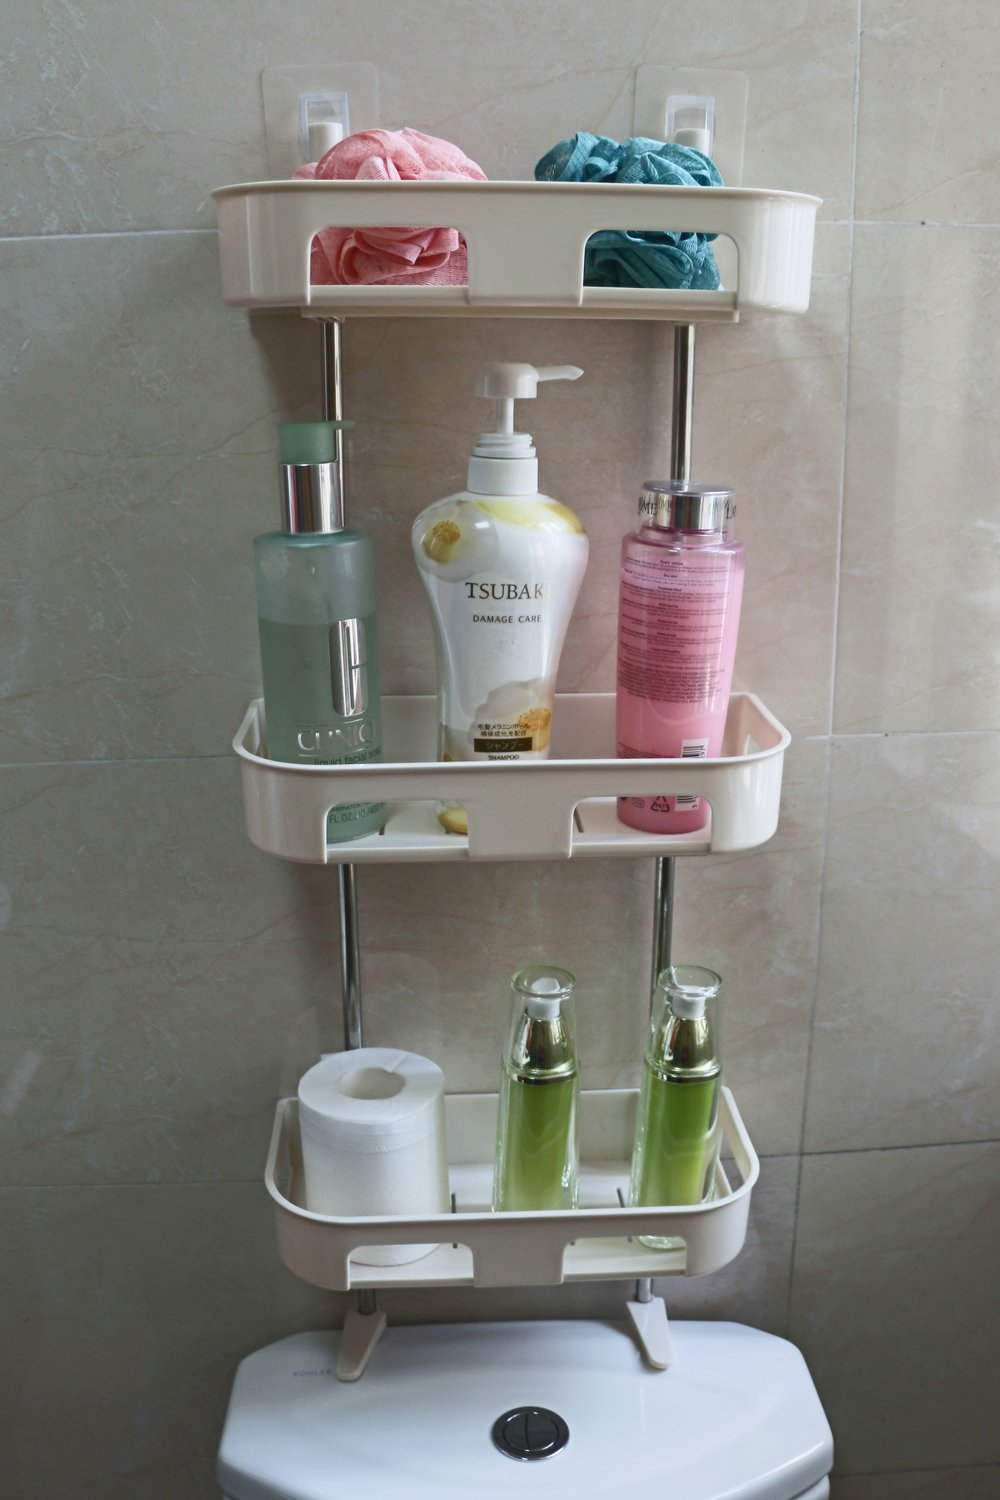 Exilot 3 Tier Standing Rack Bathroom Organizer, Over The Toilet Storage,  Kitchen Countertop